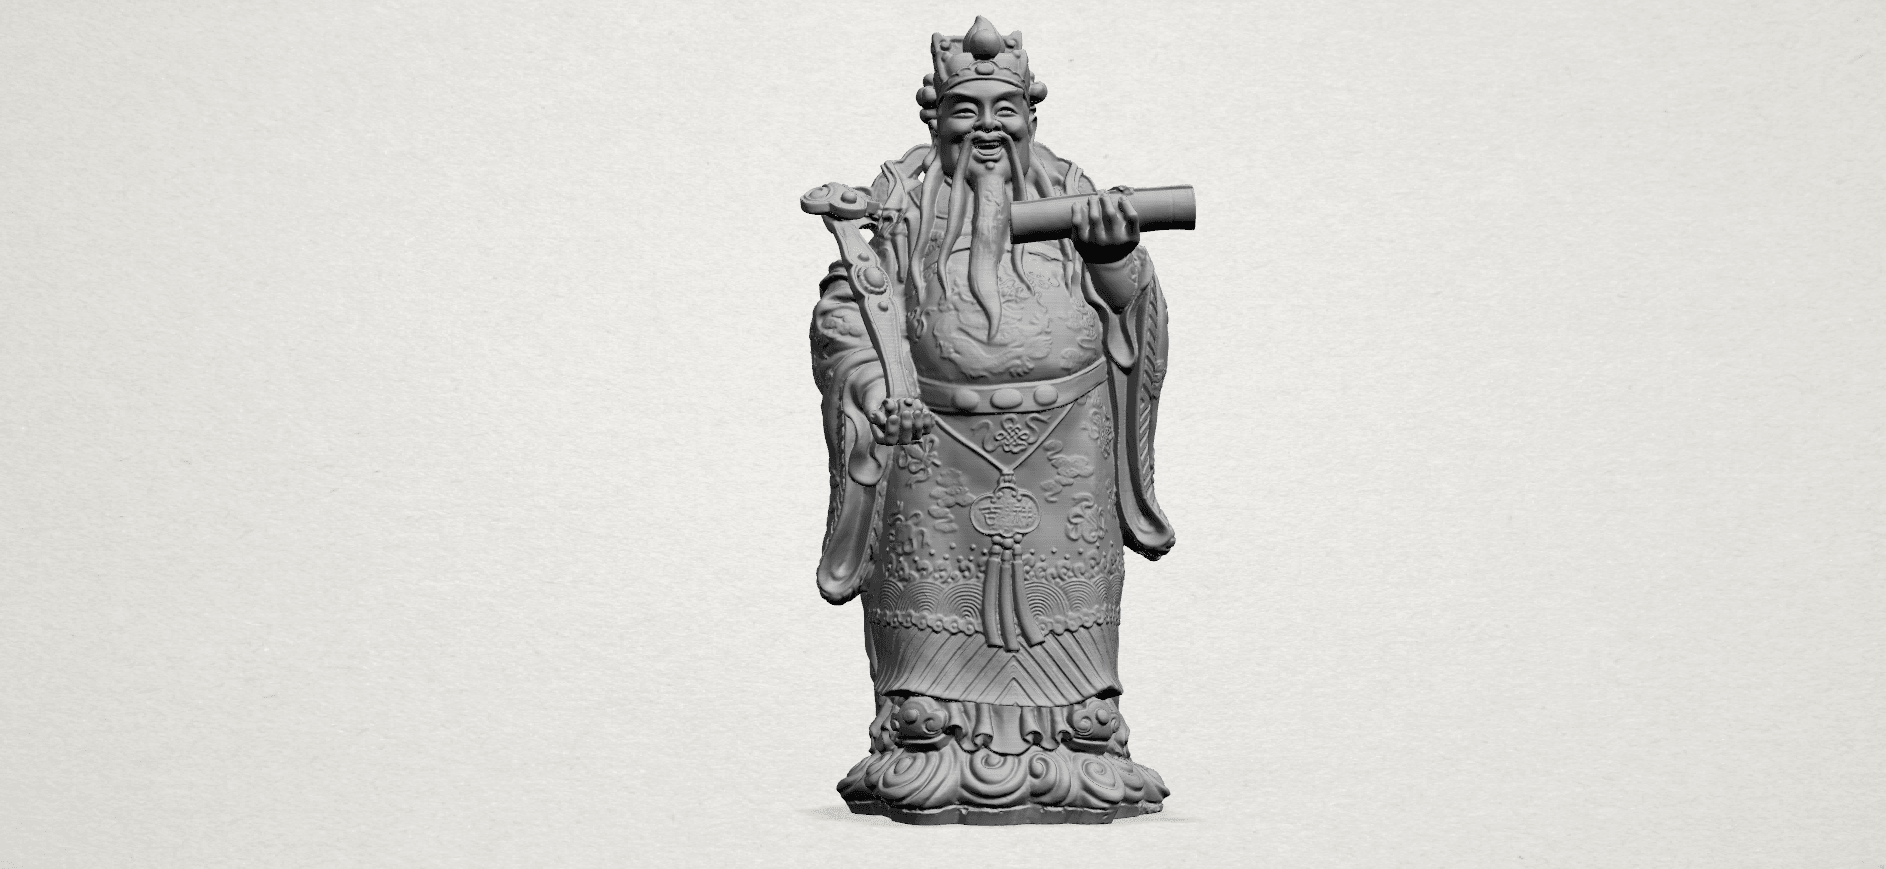 God of Treasure - A01.png Download free STL file God of Treasure • 3D printing model, GeorgesNikkei